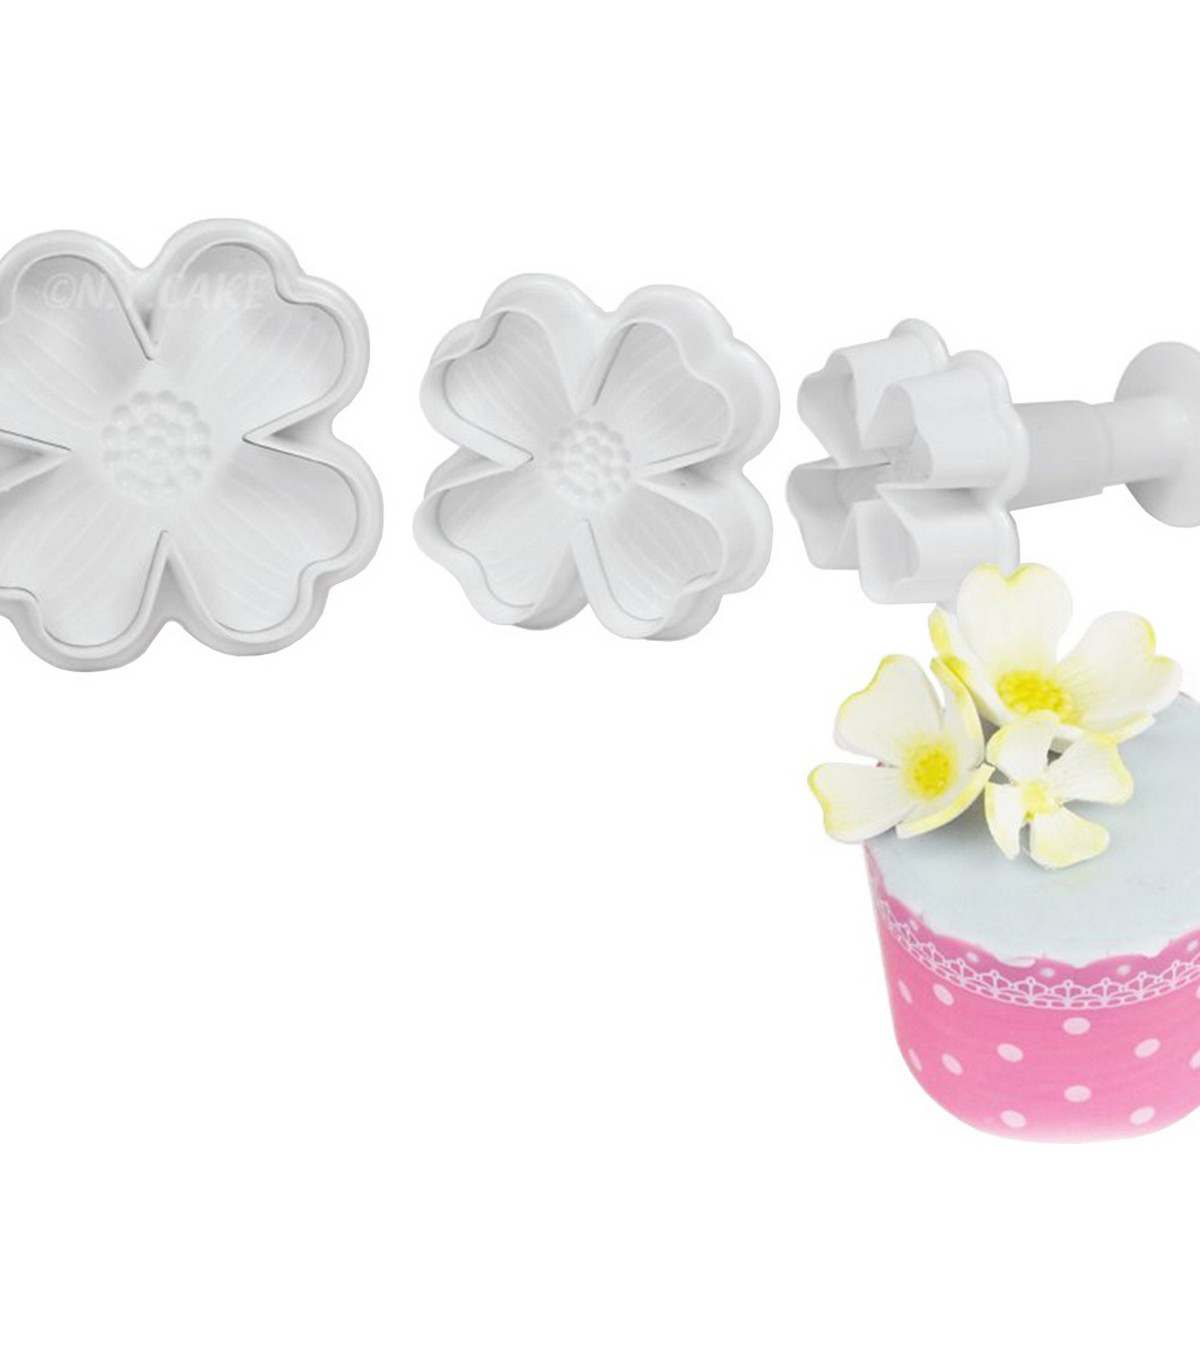 NY Cake Plunger Cutters 3/Pkg-Dogwood